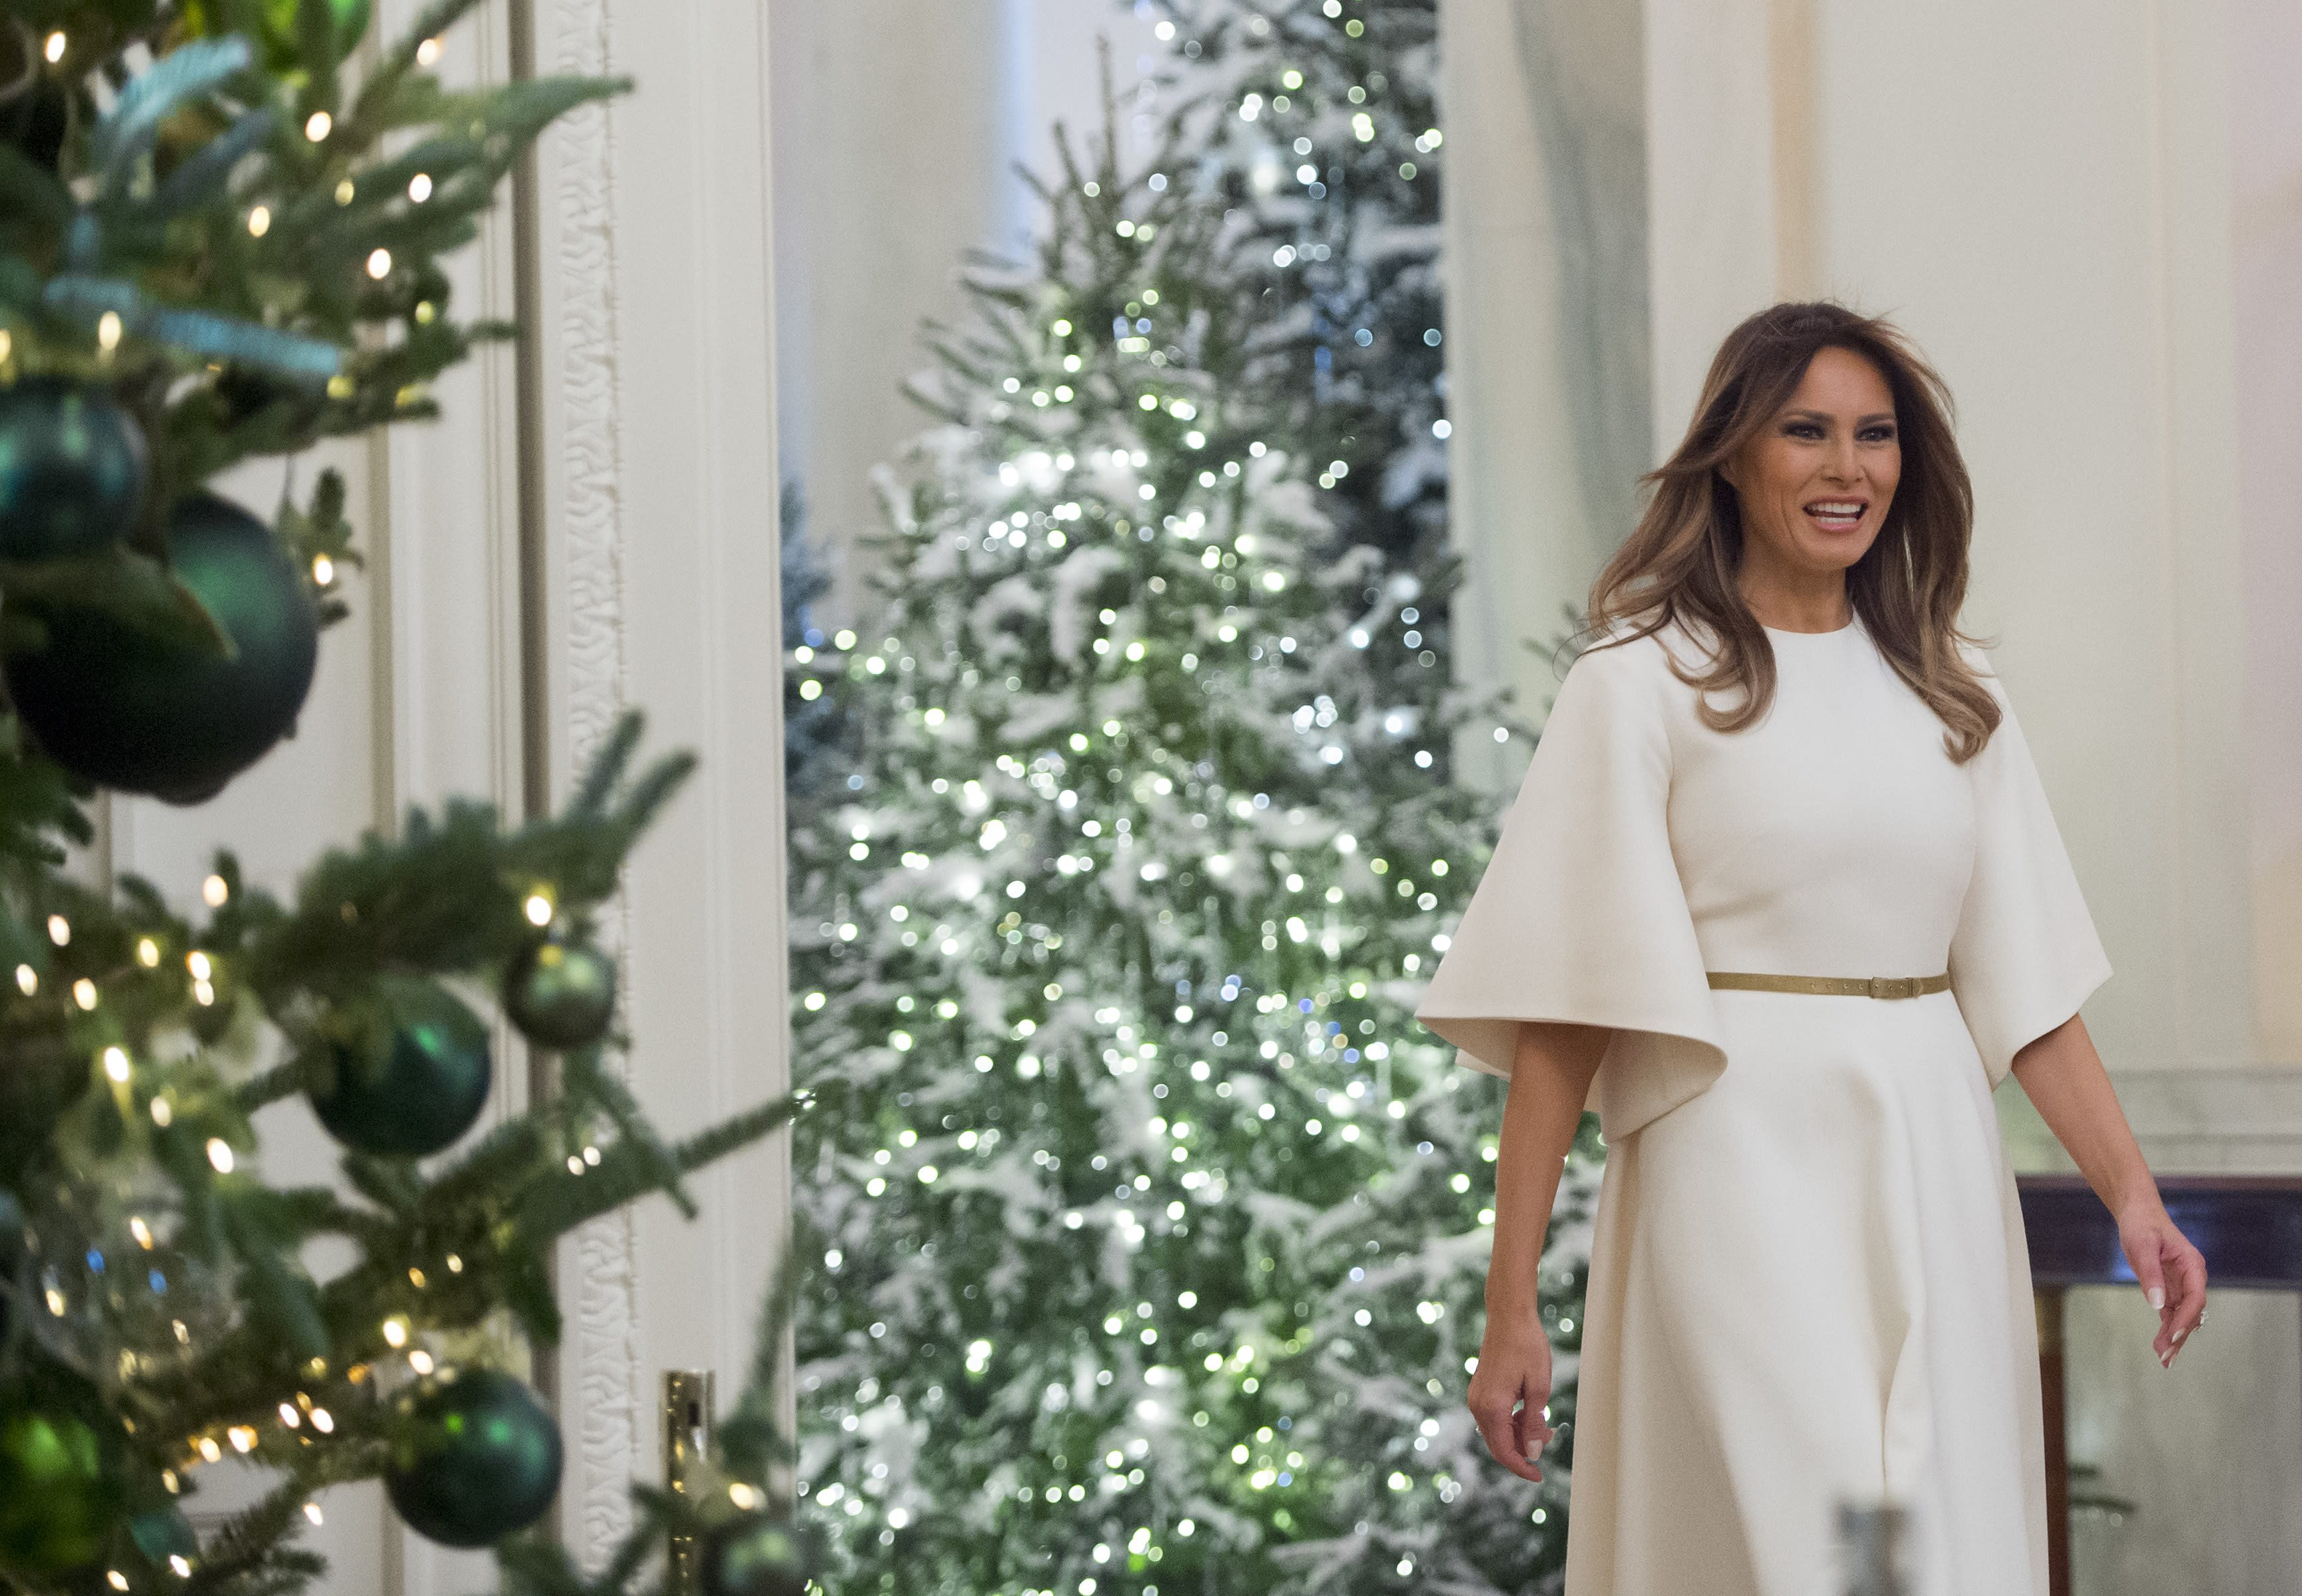 Melania Trump S Christmas Decorations At The White House